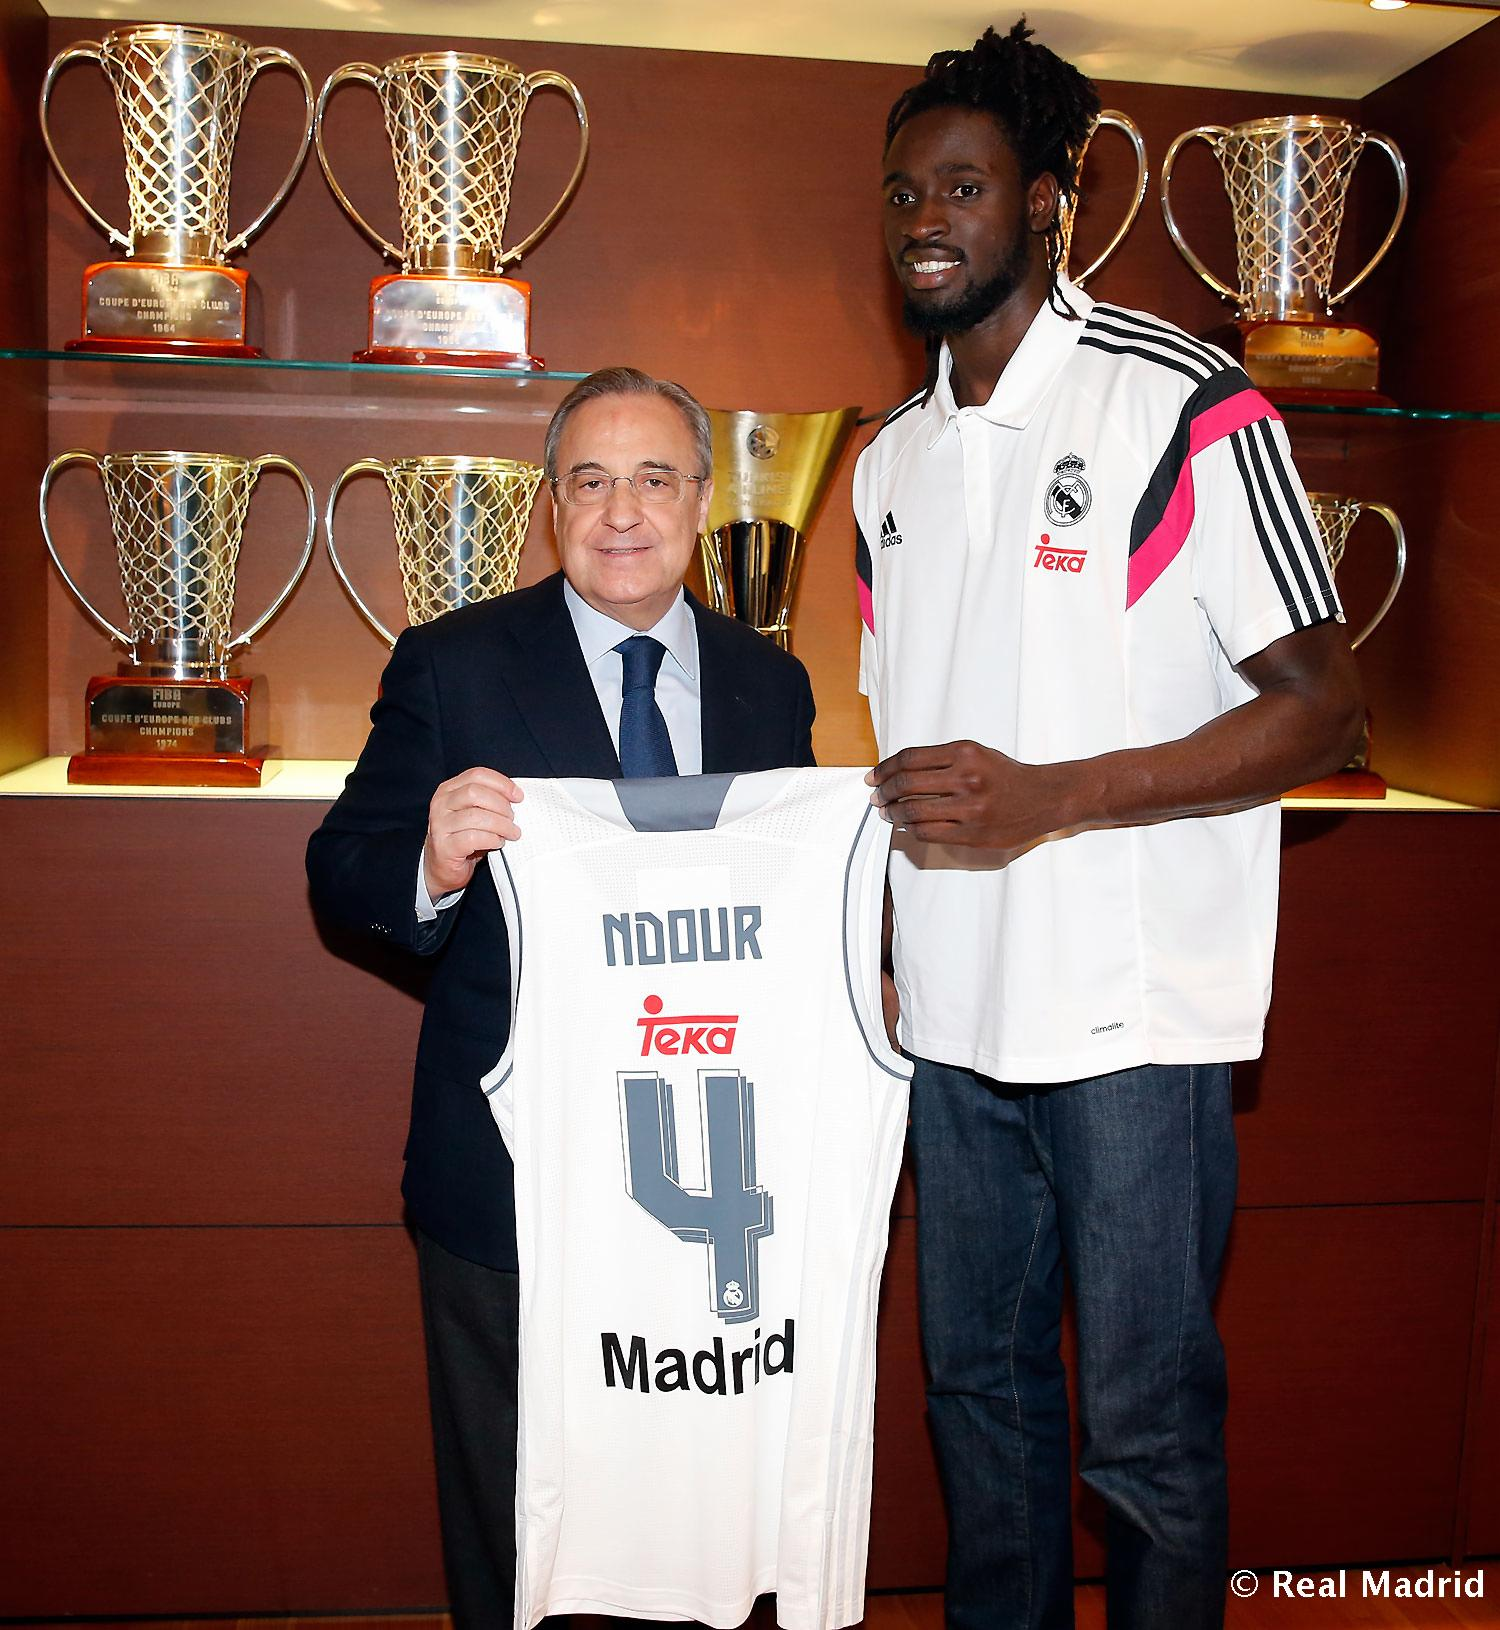 Real Madrid - Maurice Ndour - 05-12-2015